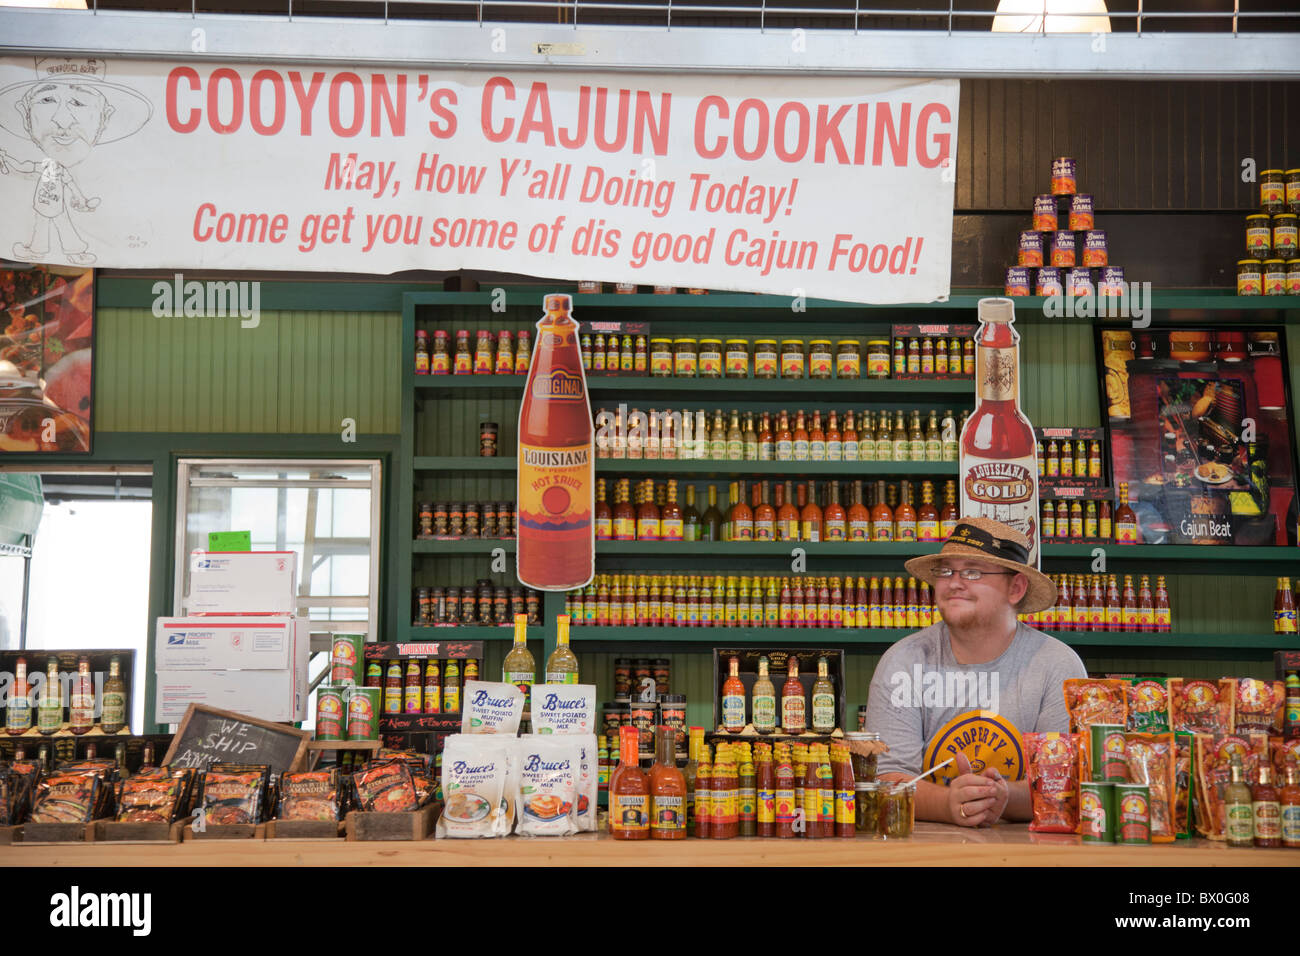 The French Market in the French Quarter of Louisiana, New Orleans sells spices and condiments for Cajun and Creole Stock Photo